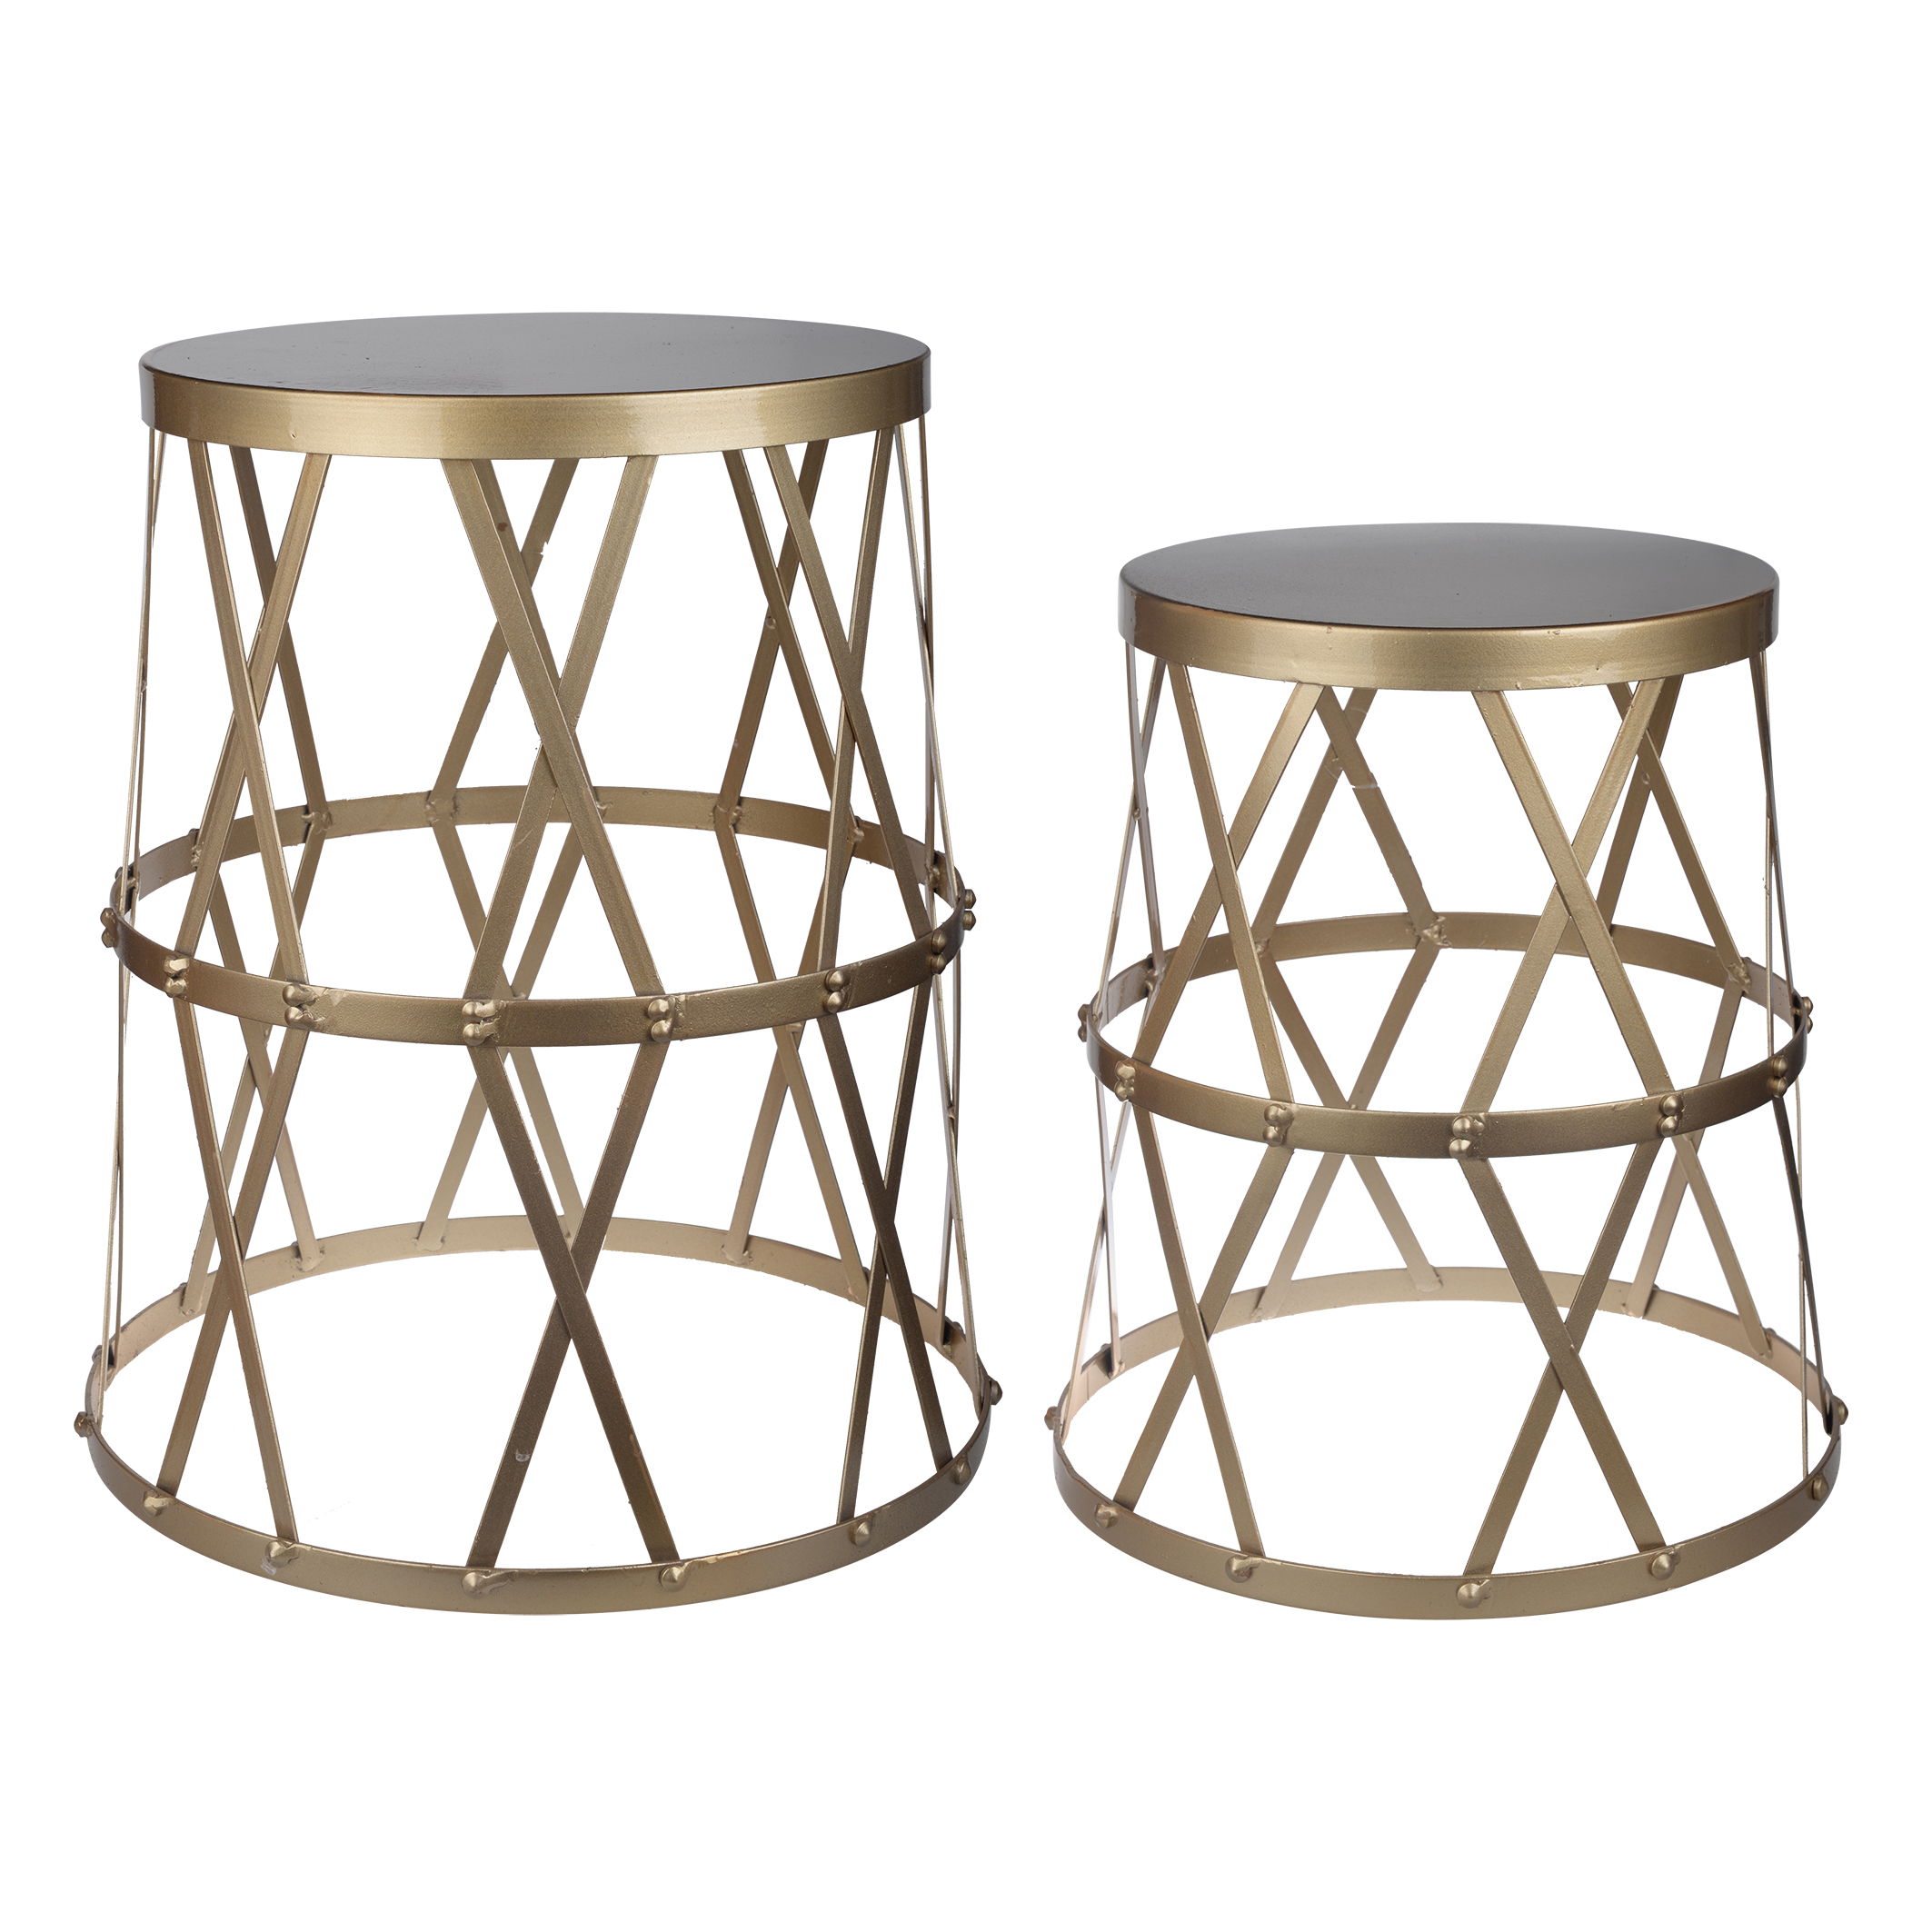 A&B Home Urban Vogue Accent Tables, Gold, Set of 2